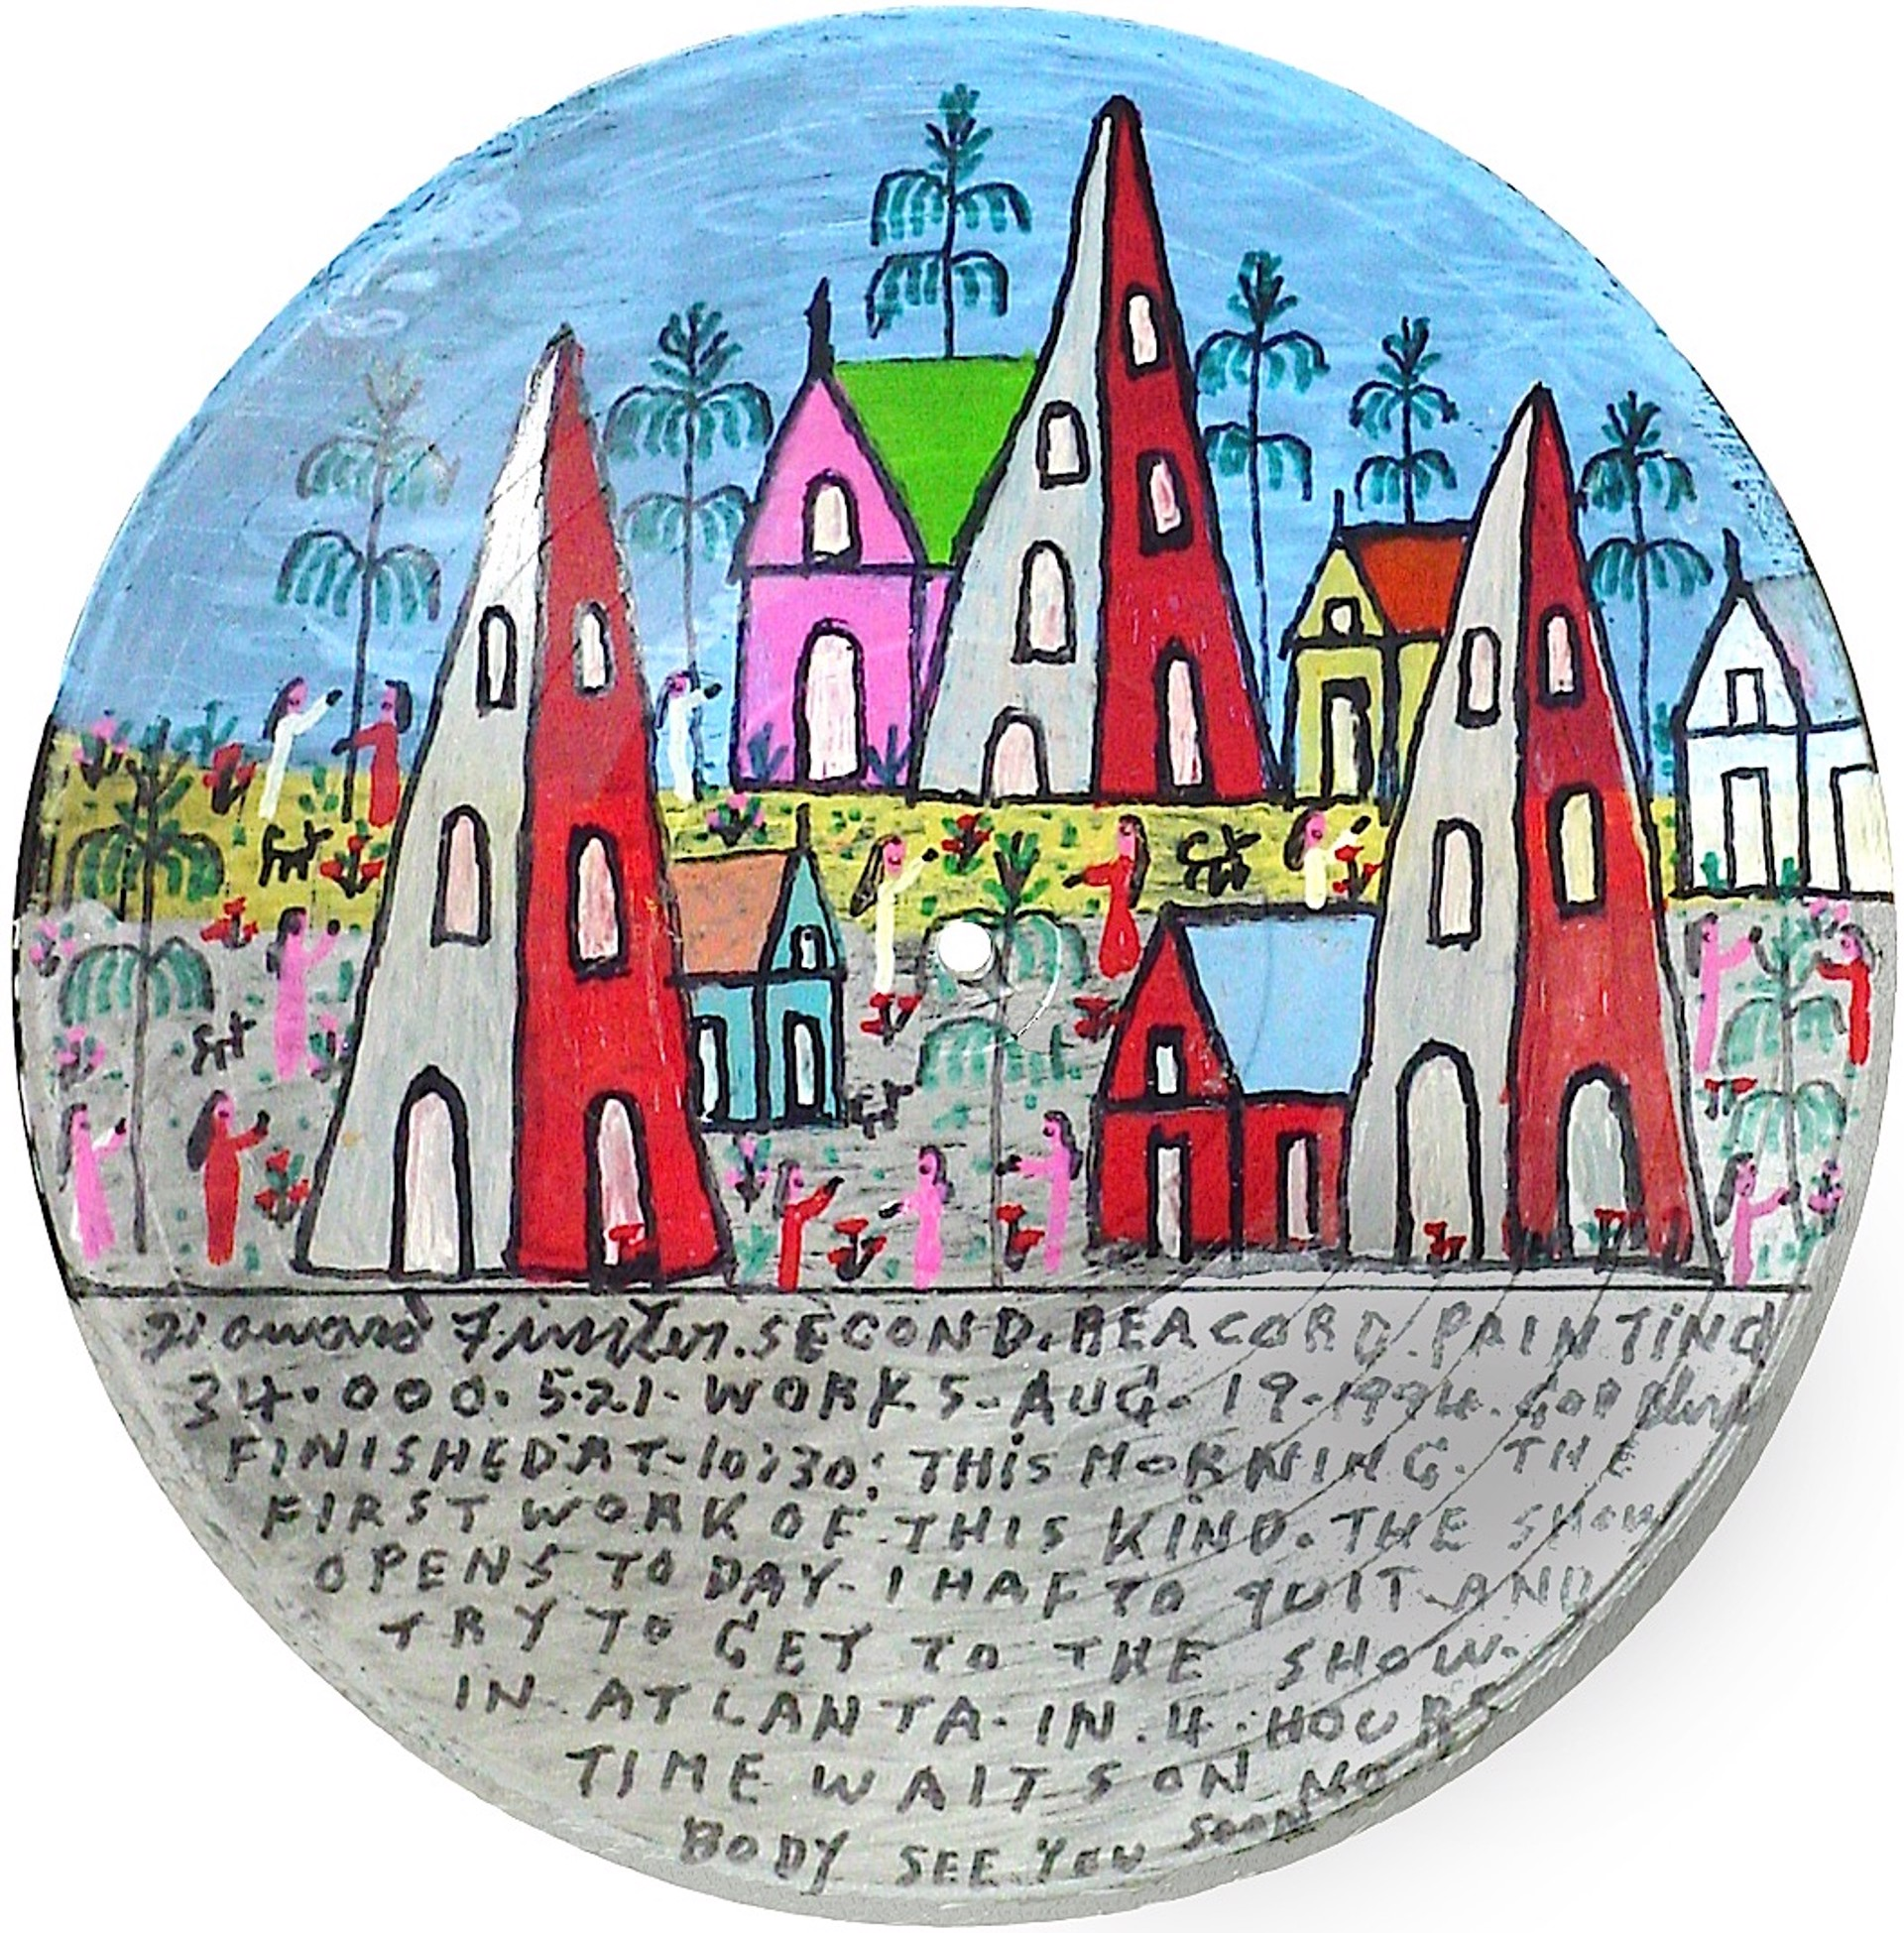 Second Record Painting by Howard Finster